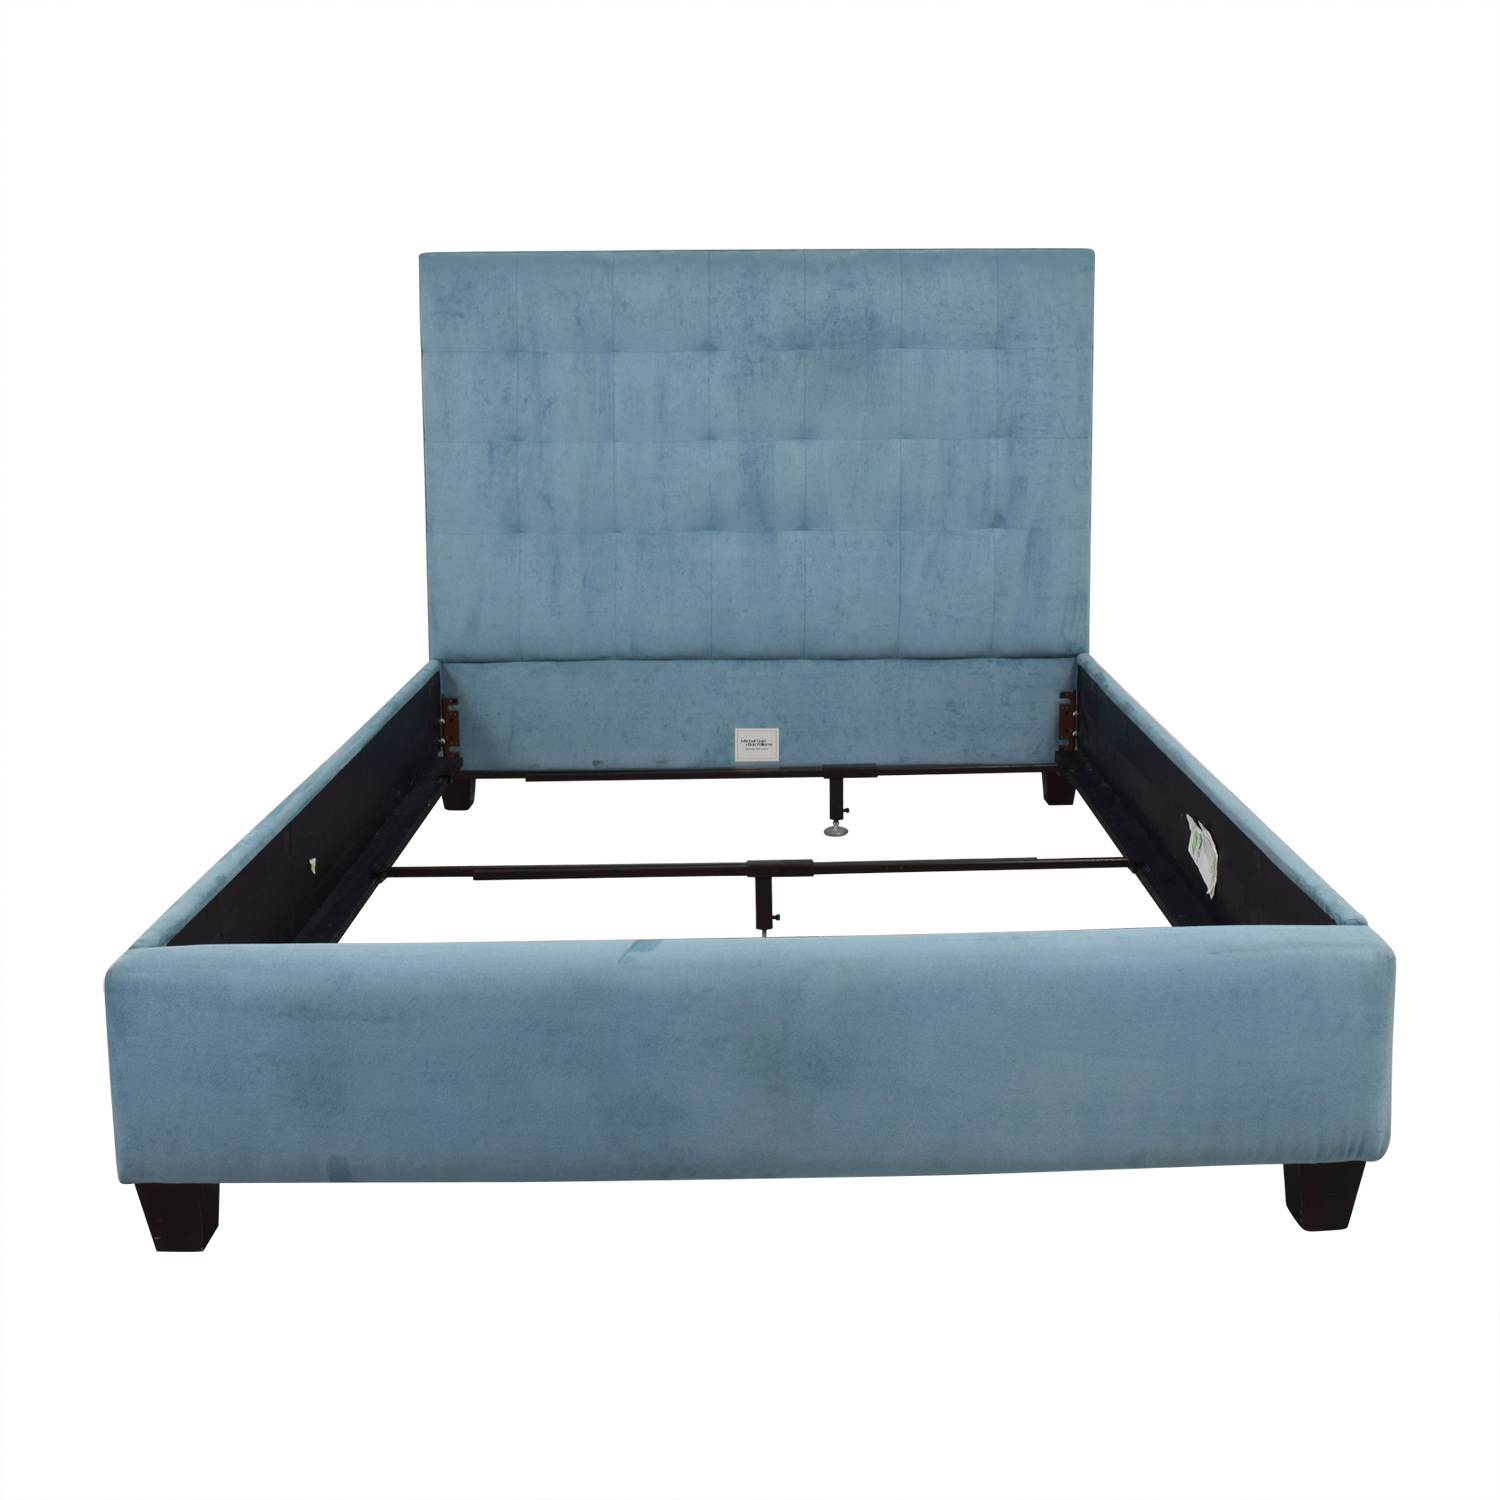 shop Mitchell Gold + Bob Williams Butler Teal Queen Floating Rail Bed Frame Mitchell Gold + Bob Williams